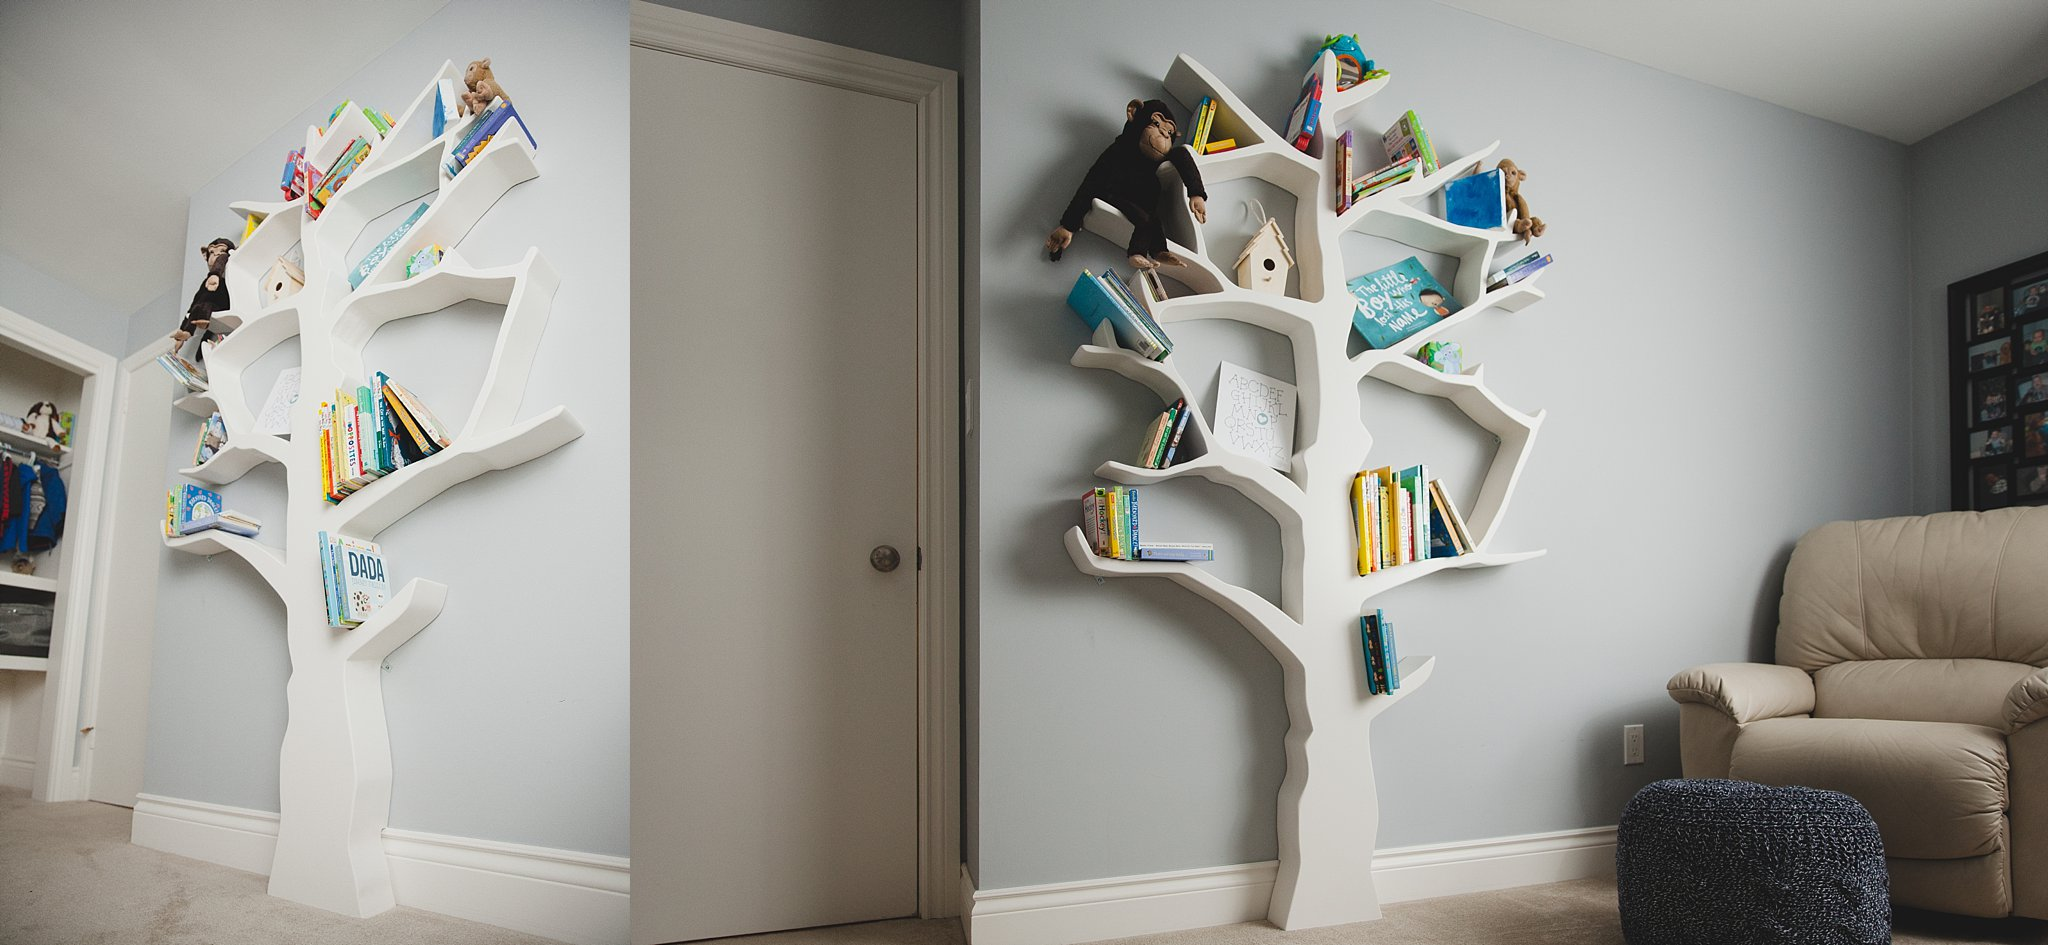 Seven foot tall handmade tree bookshelf for kids room.  Photographed near Woodstock, ON  by Rachael Little Photography.